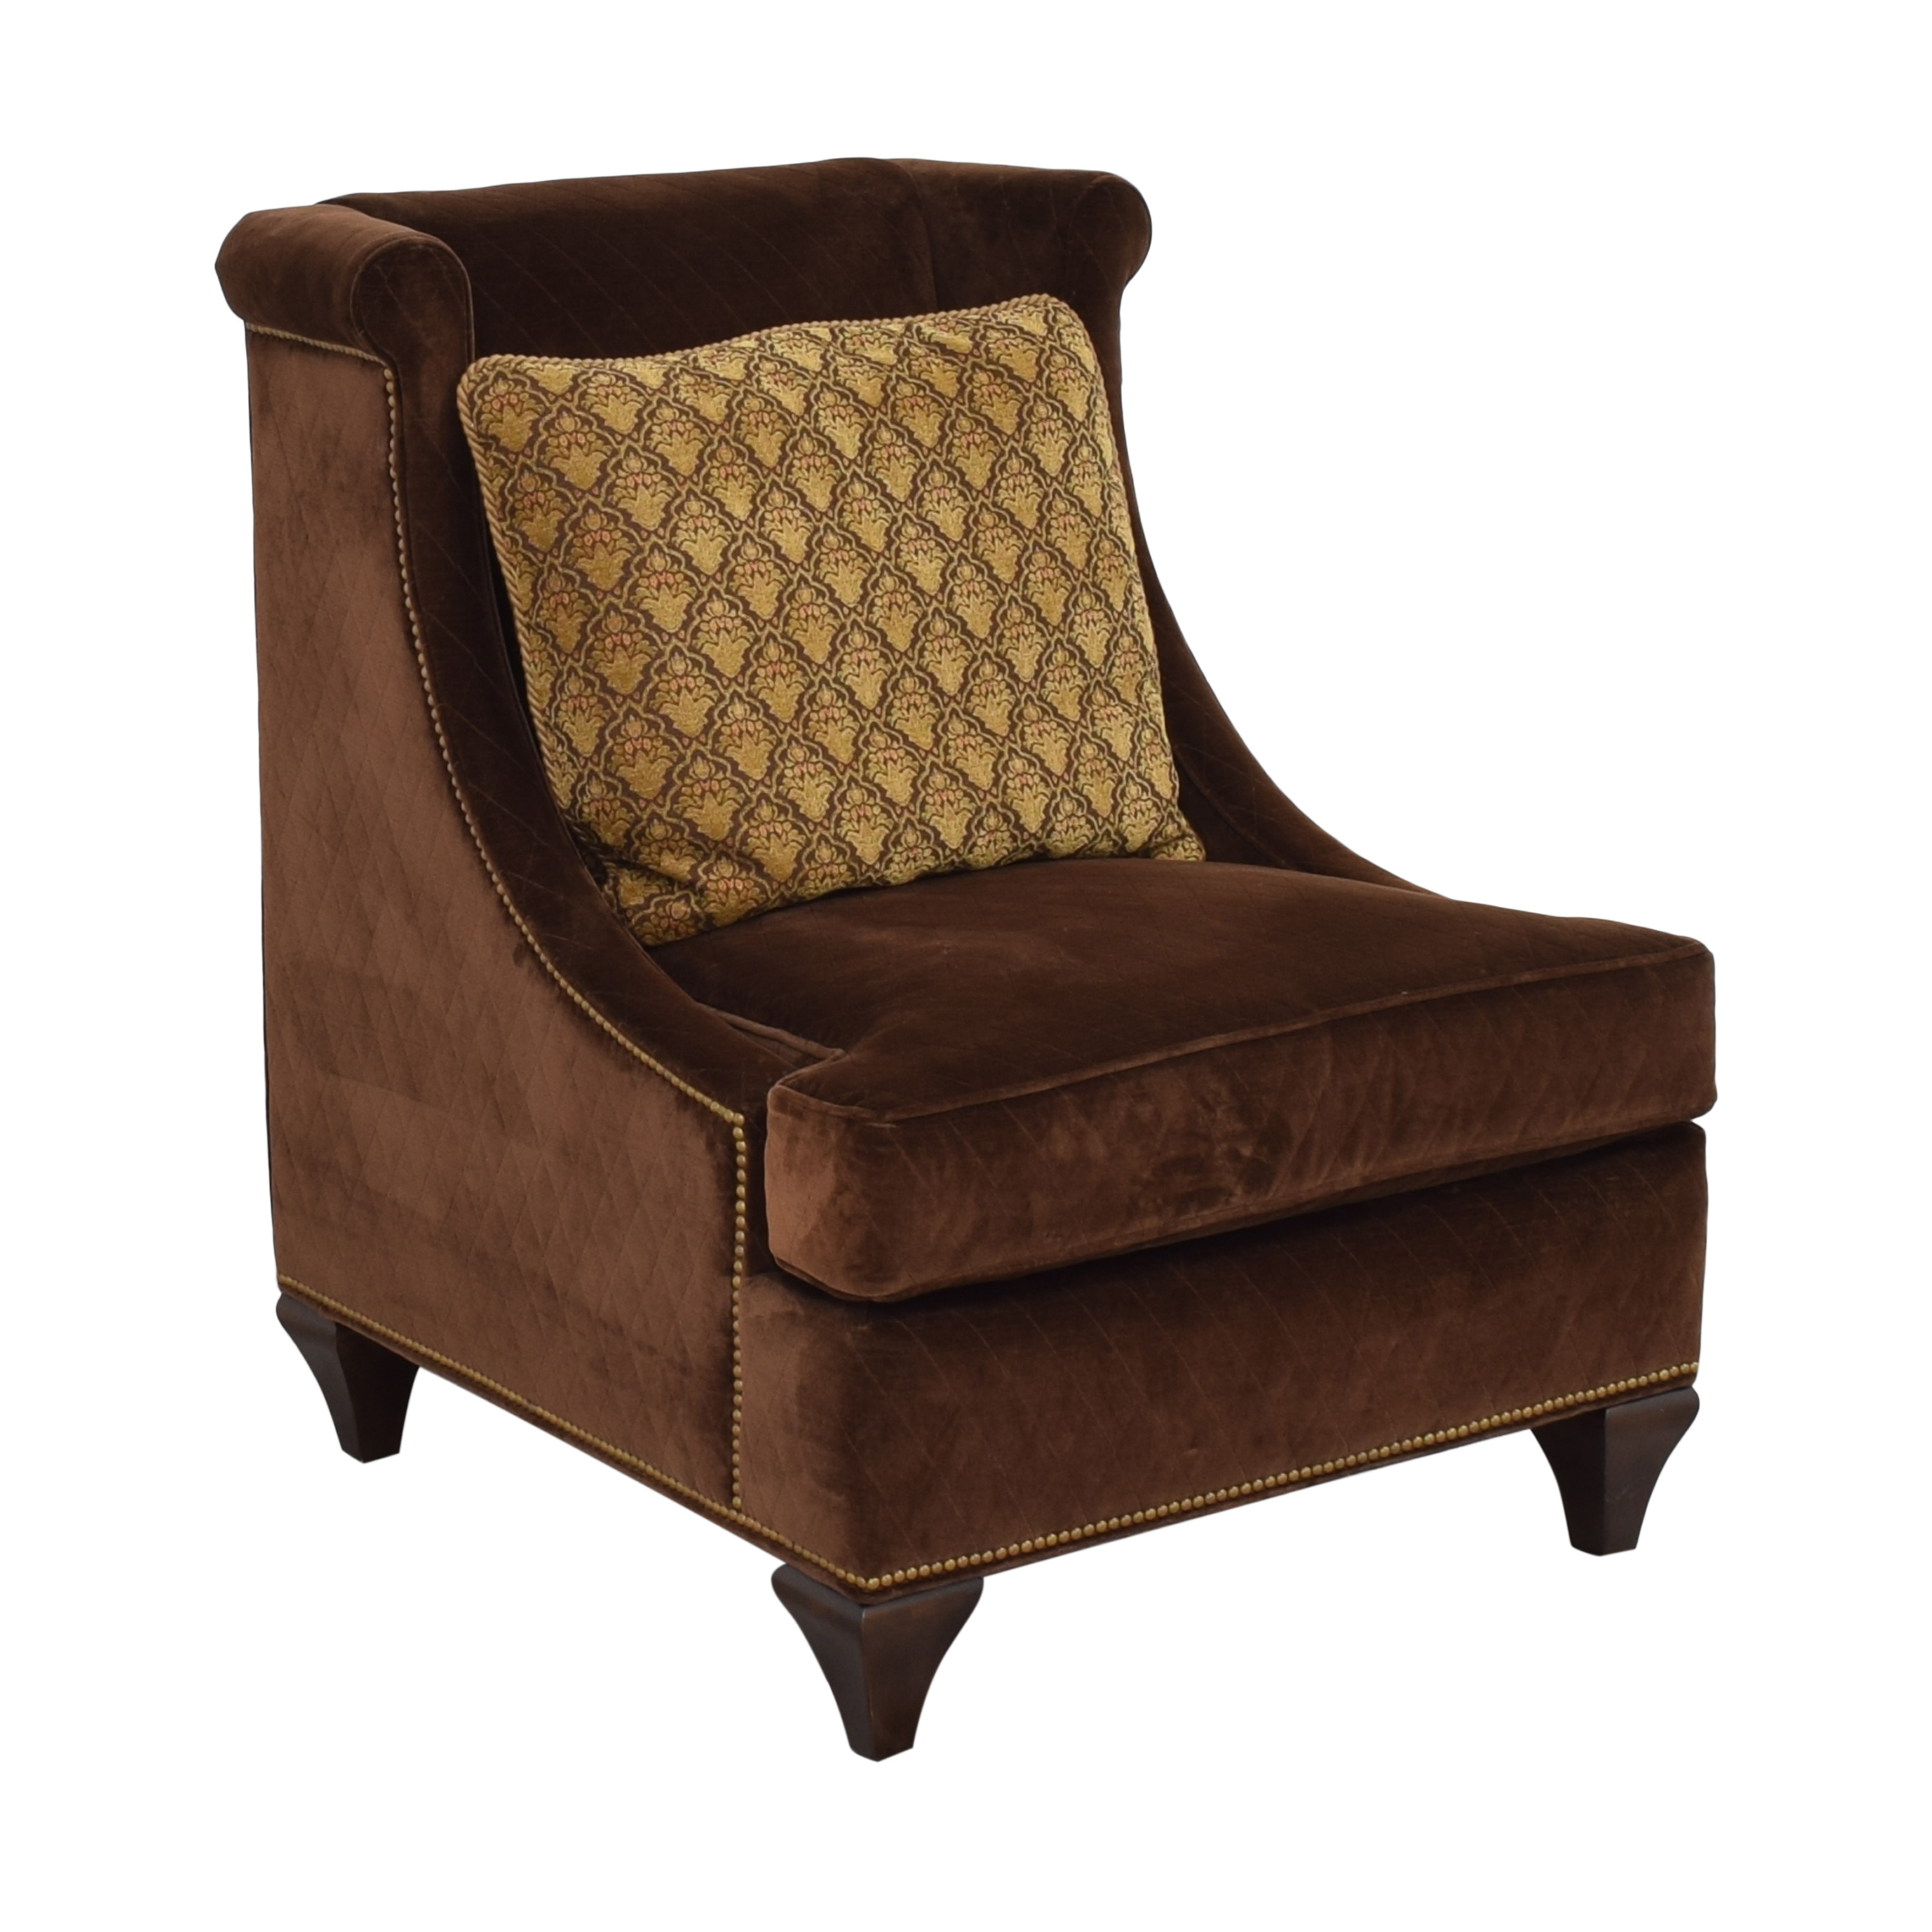 Stanford Furniture Stanford Furniture Blane Accent Chair coupon